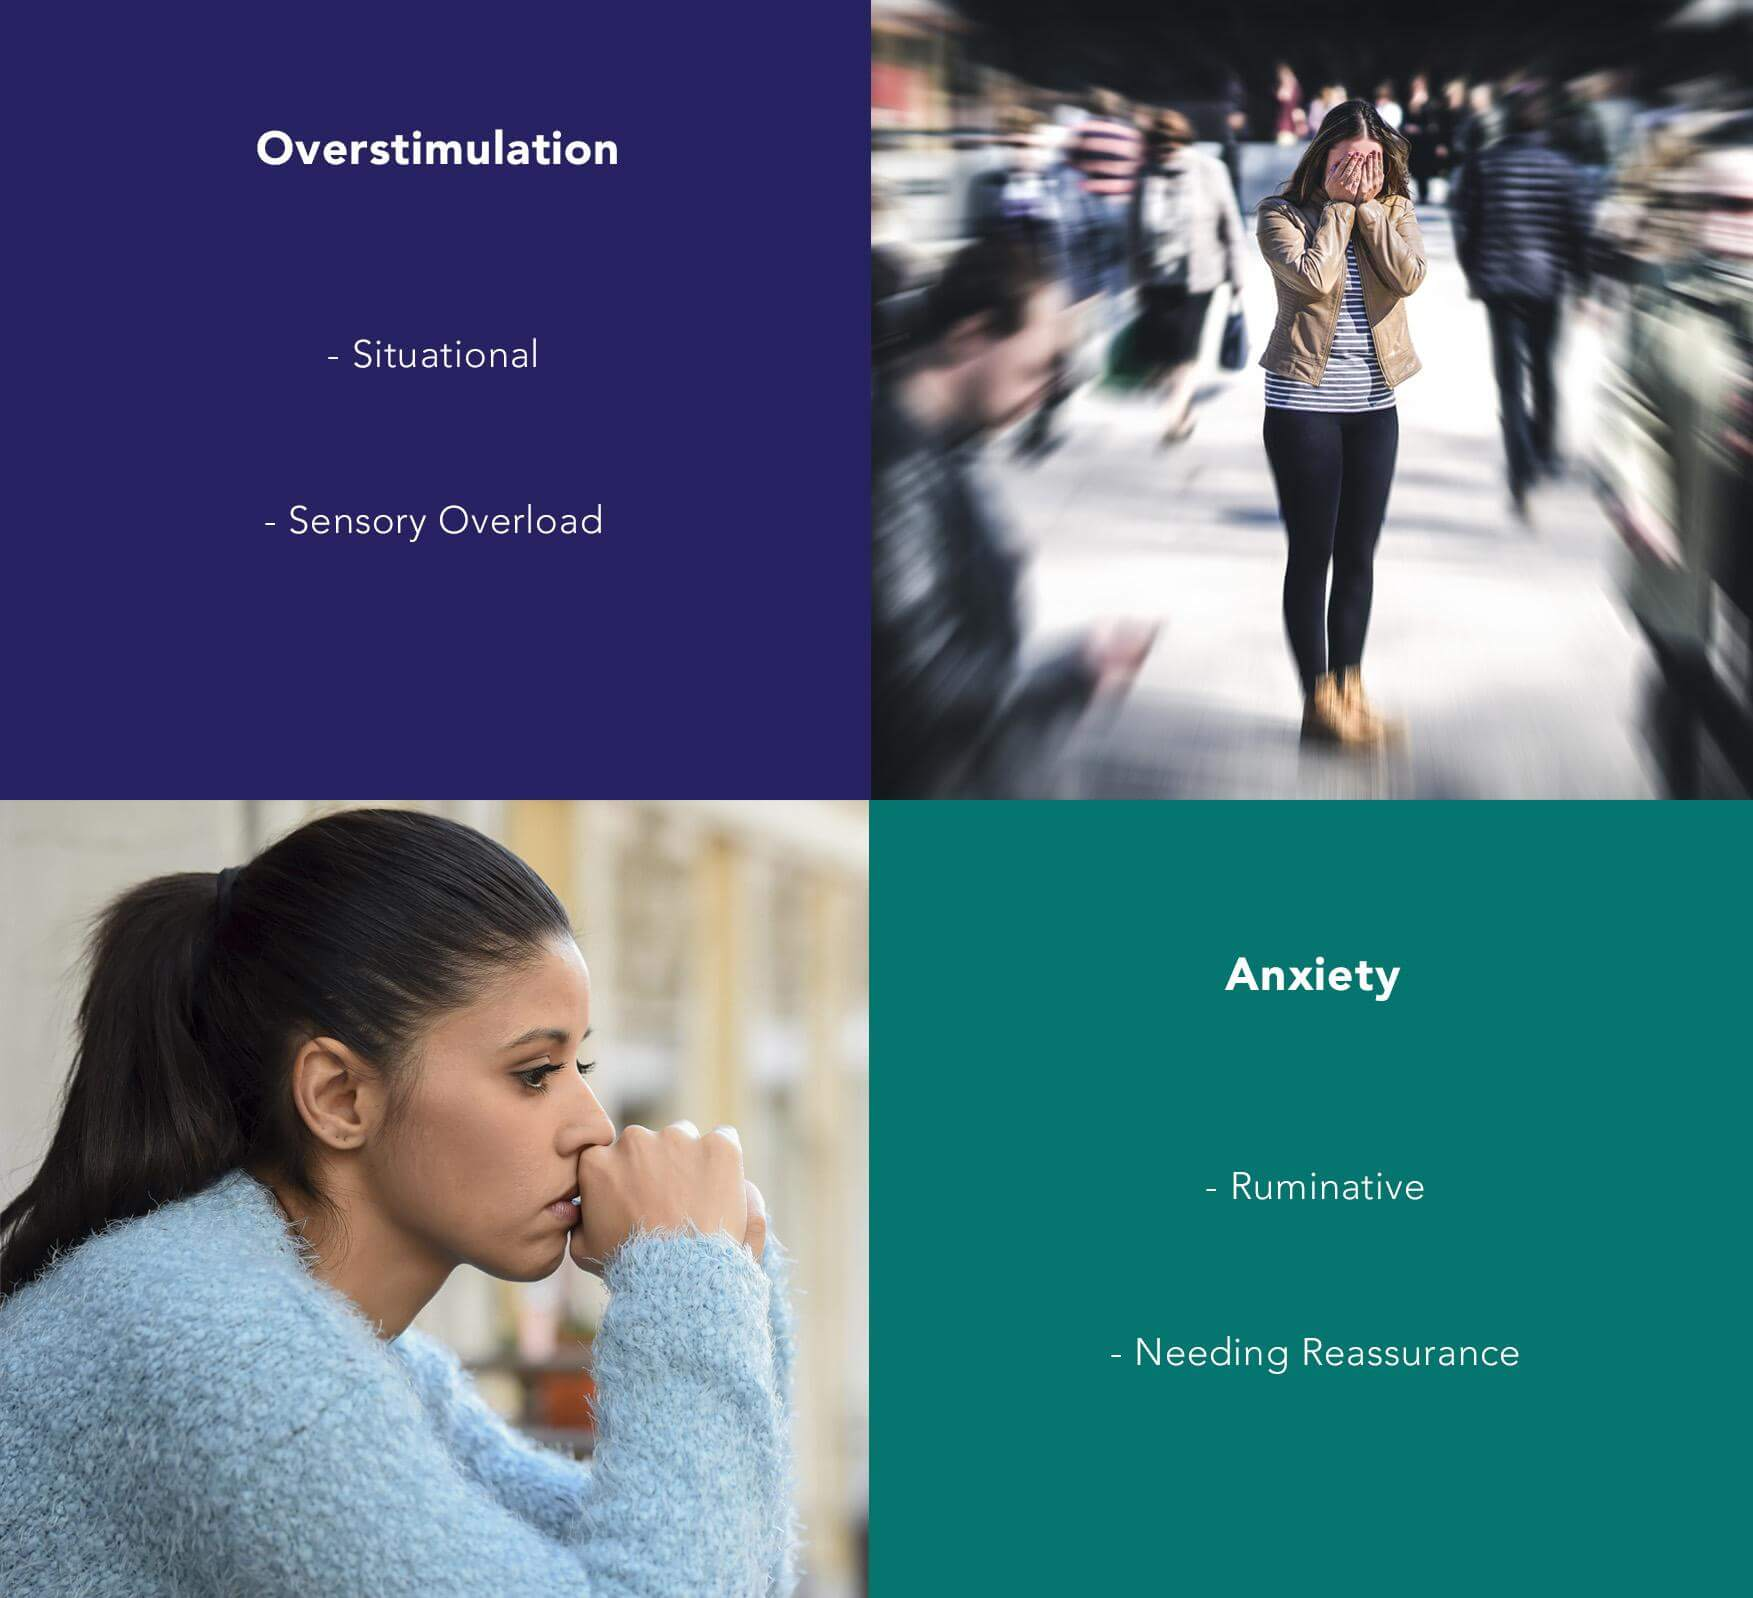 Overstimulation: Situational, Sensory Overload; Anxiety: Ruminative, Needing Reassurance